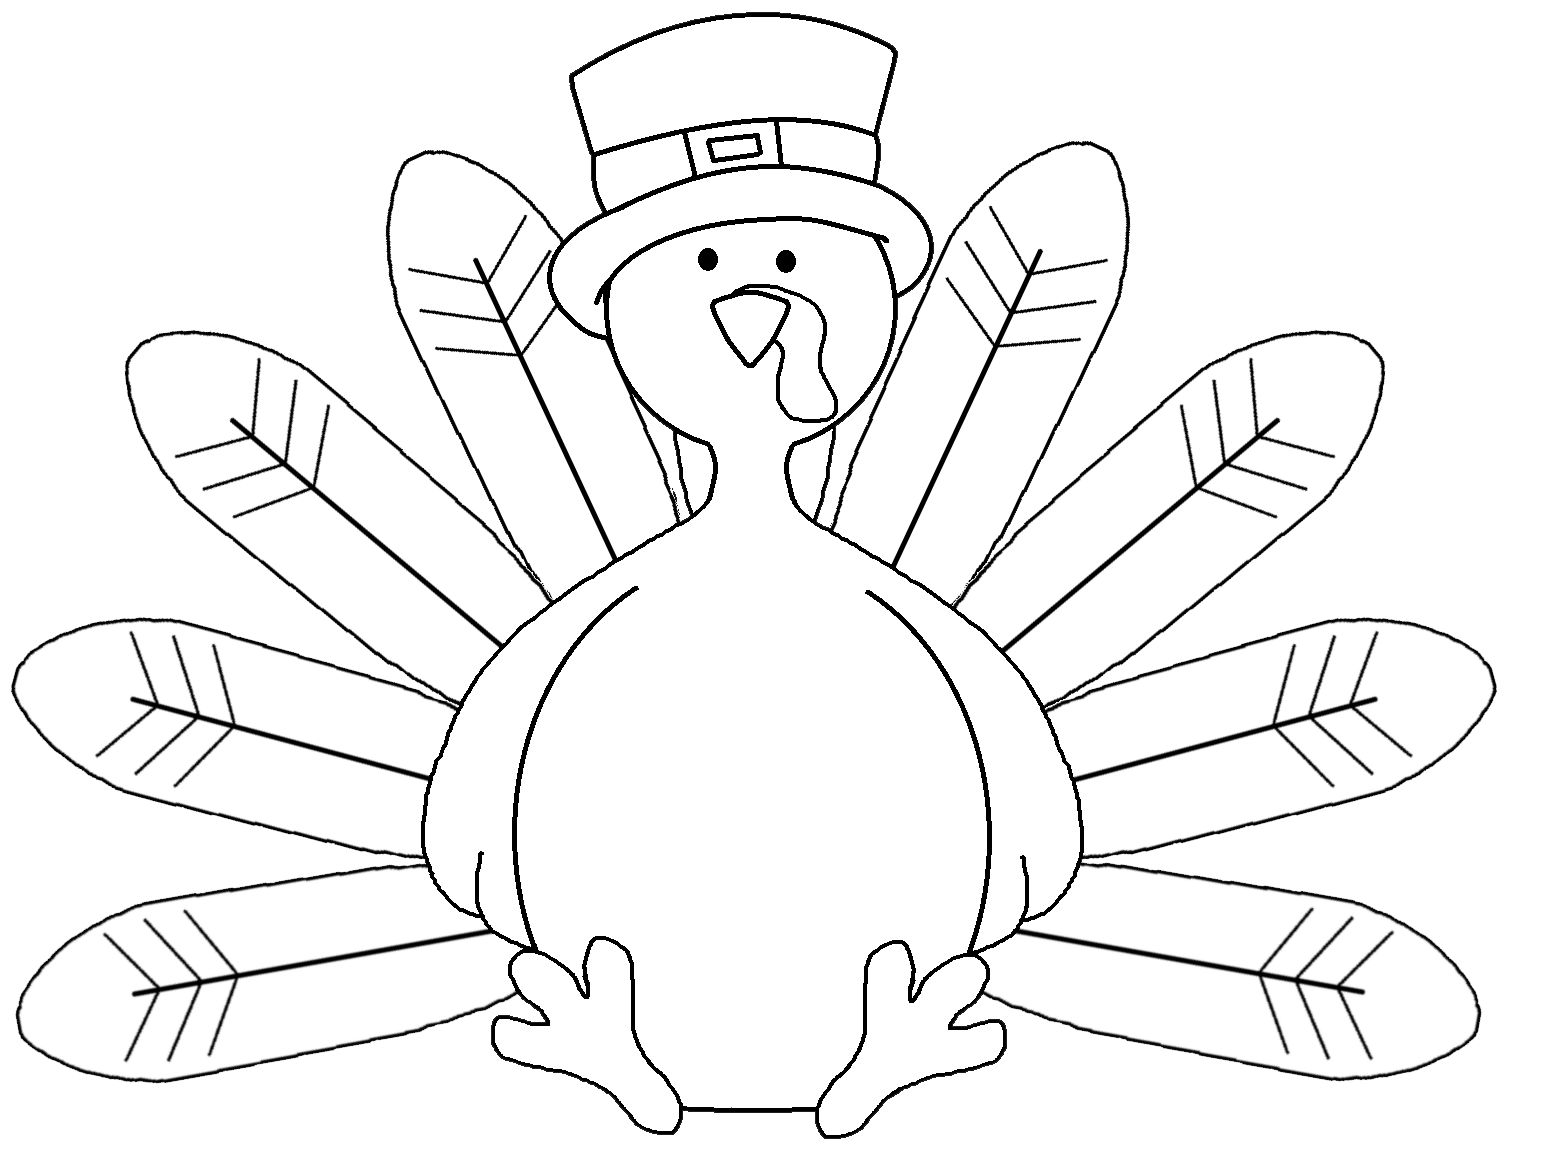 coloring cute turkey clipart best turkey clipart black and white 1504 clipartioncom cute turkey clipart coloring